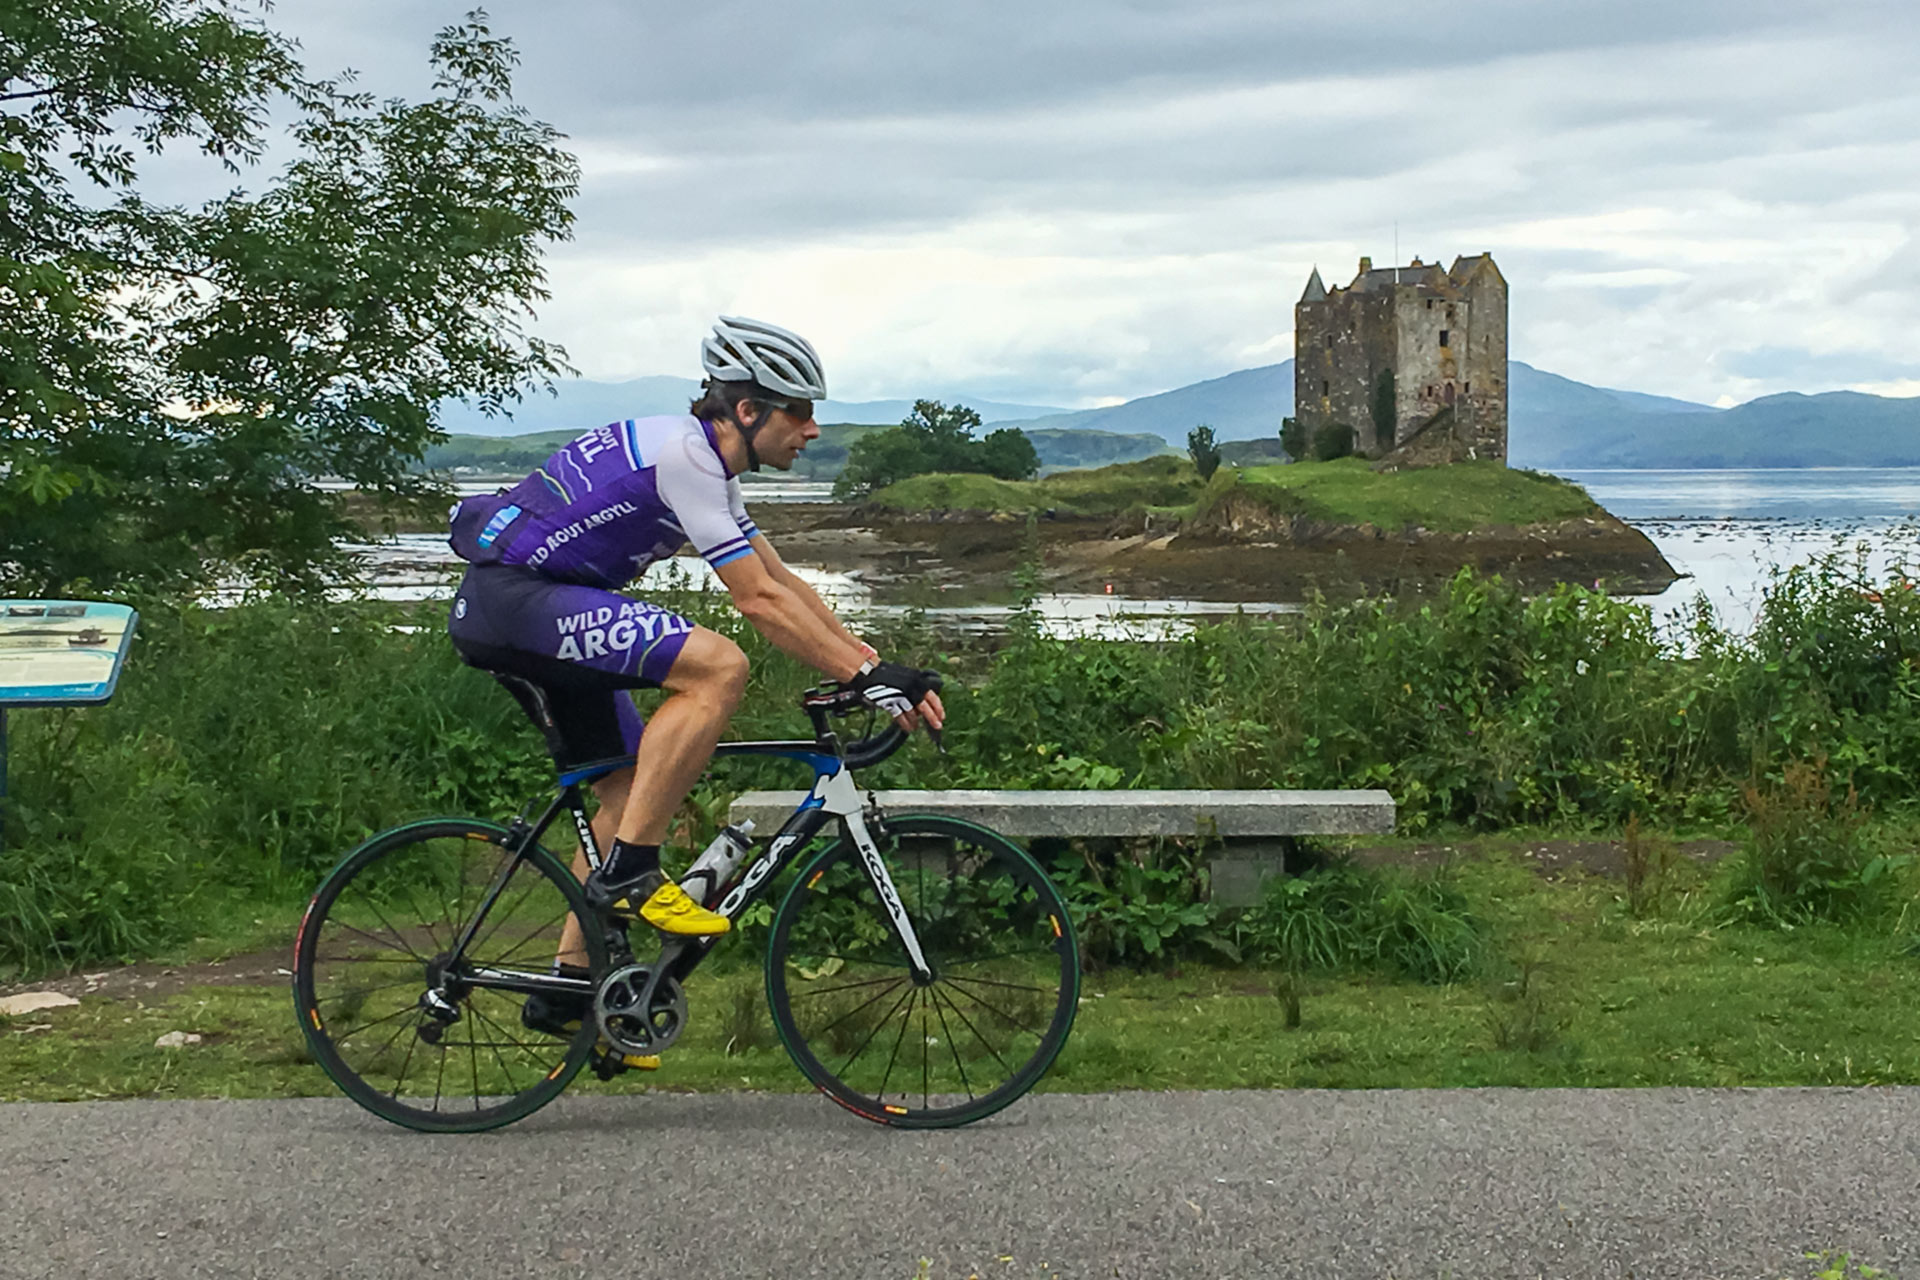 Mark Beaumont cycling along Route 78 in Argyll with Castle Stalker in the background